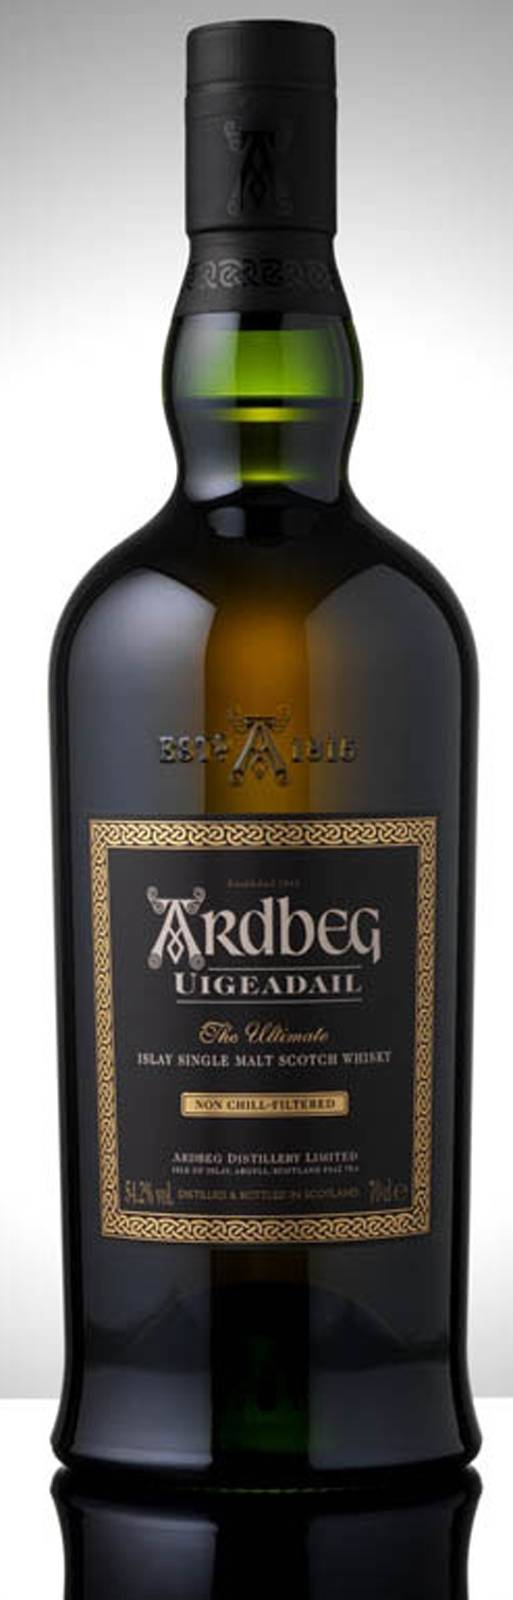 Ardbeg Uigeadail: Hard as hell to spell and often mispronounced, but just call it